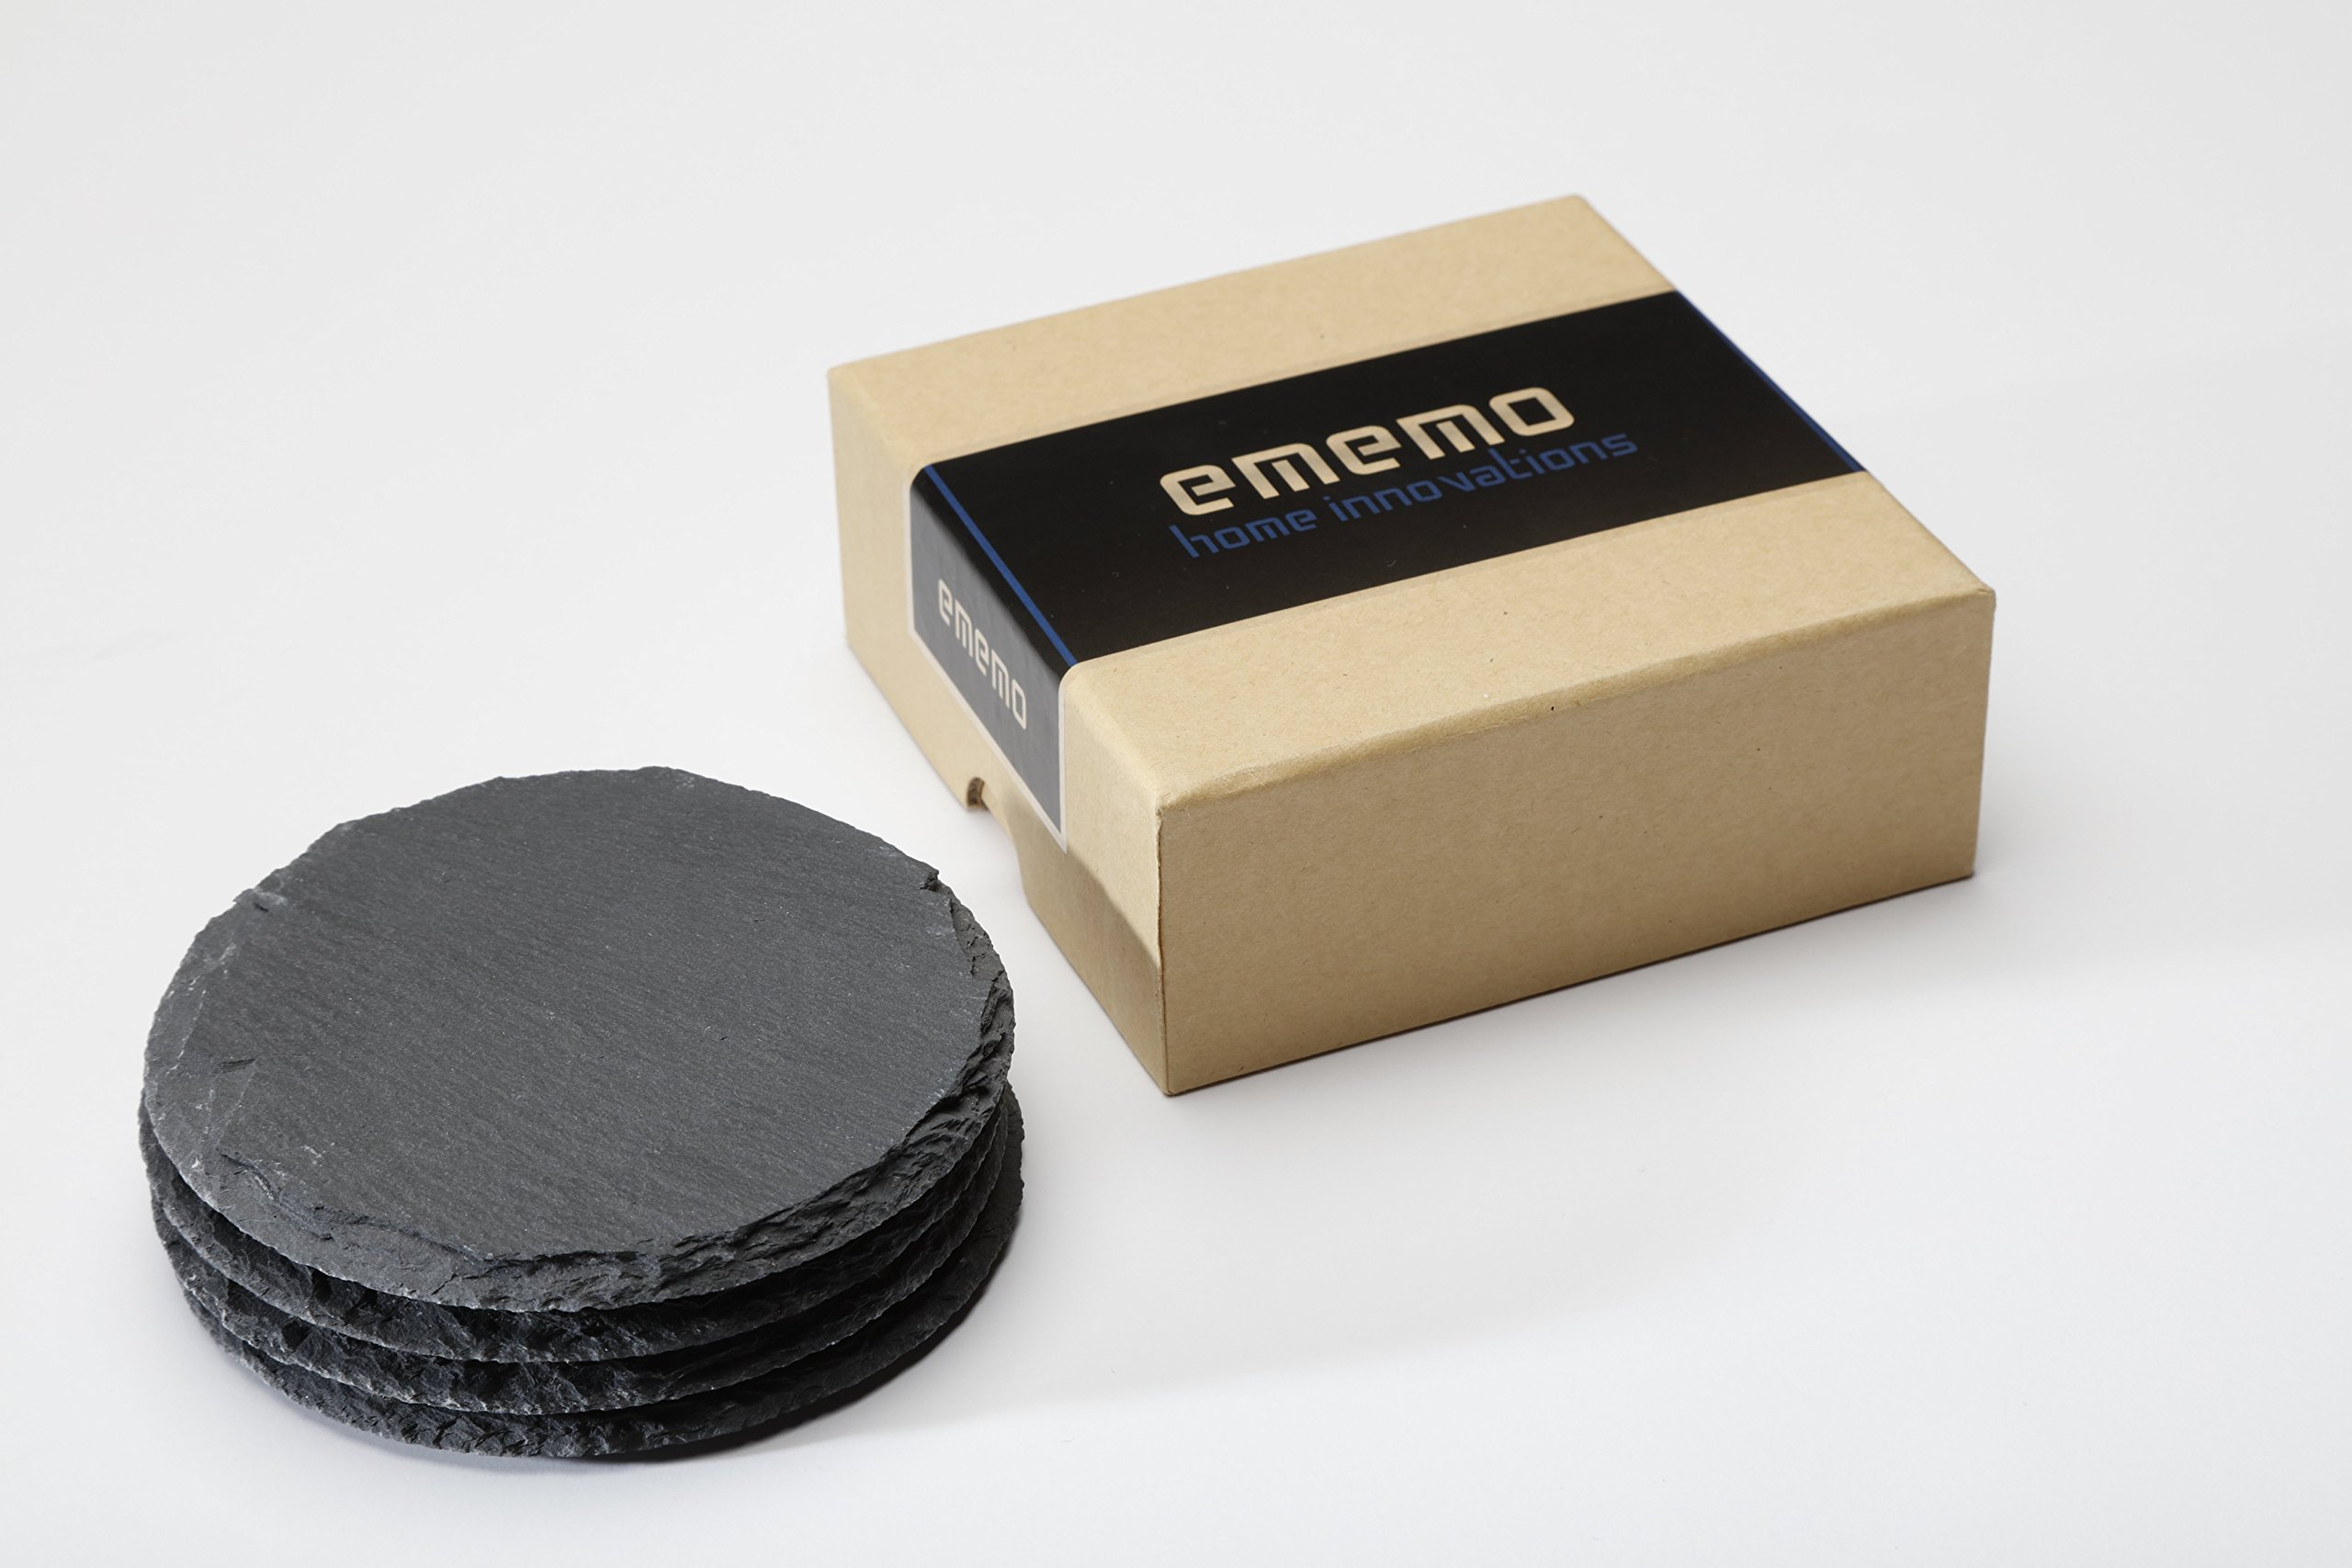 Round Slate Coasters by EMEMO® - Set of 4 Unique, Handmade Coasters For Drinks, Beverages, Wine Glasses - Elegant Look & Unmatched Furniture Protection - Made Of Genuine Black Slate